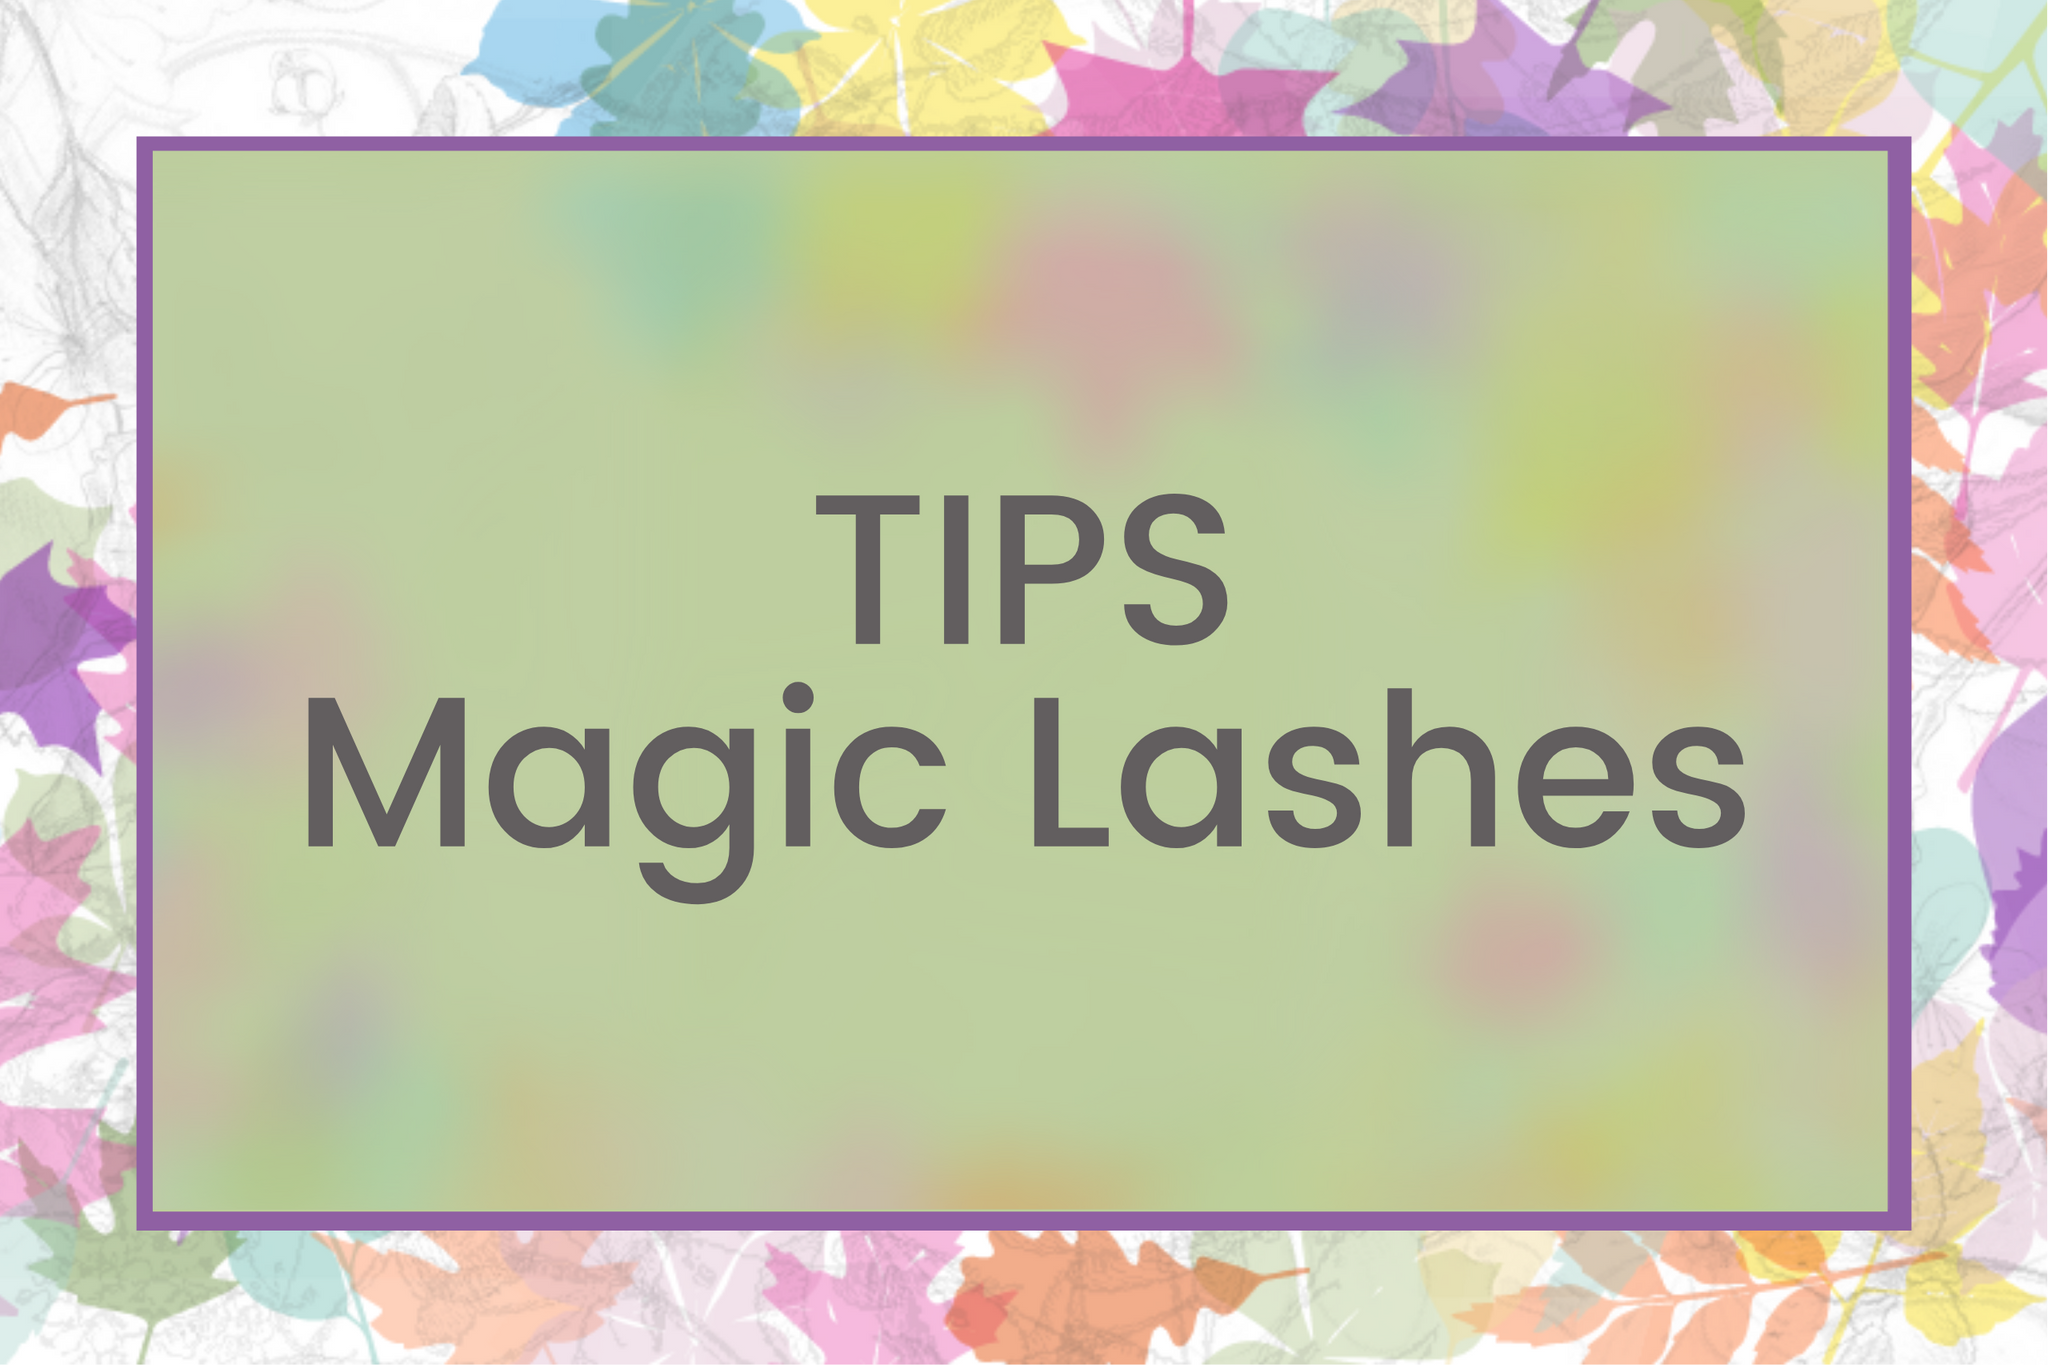 TIPS Magic Lashes